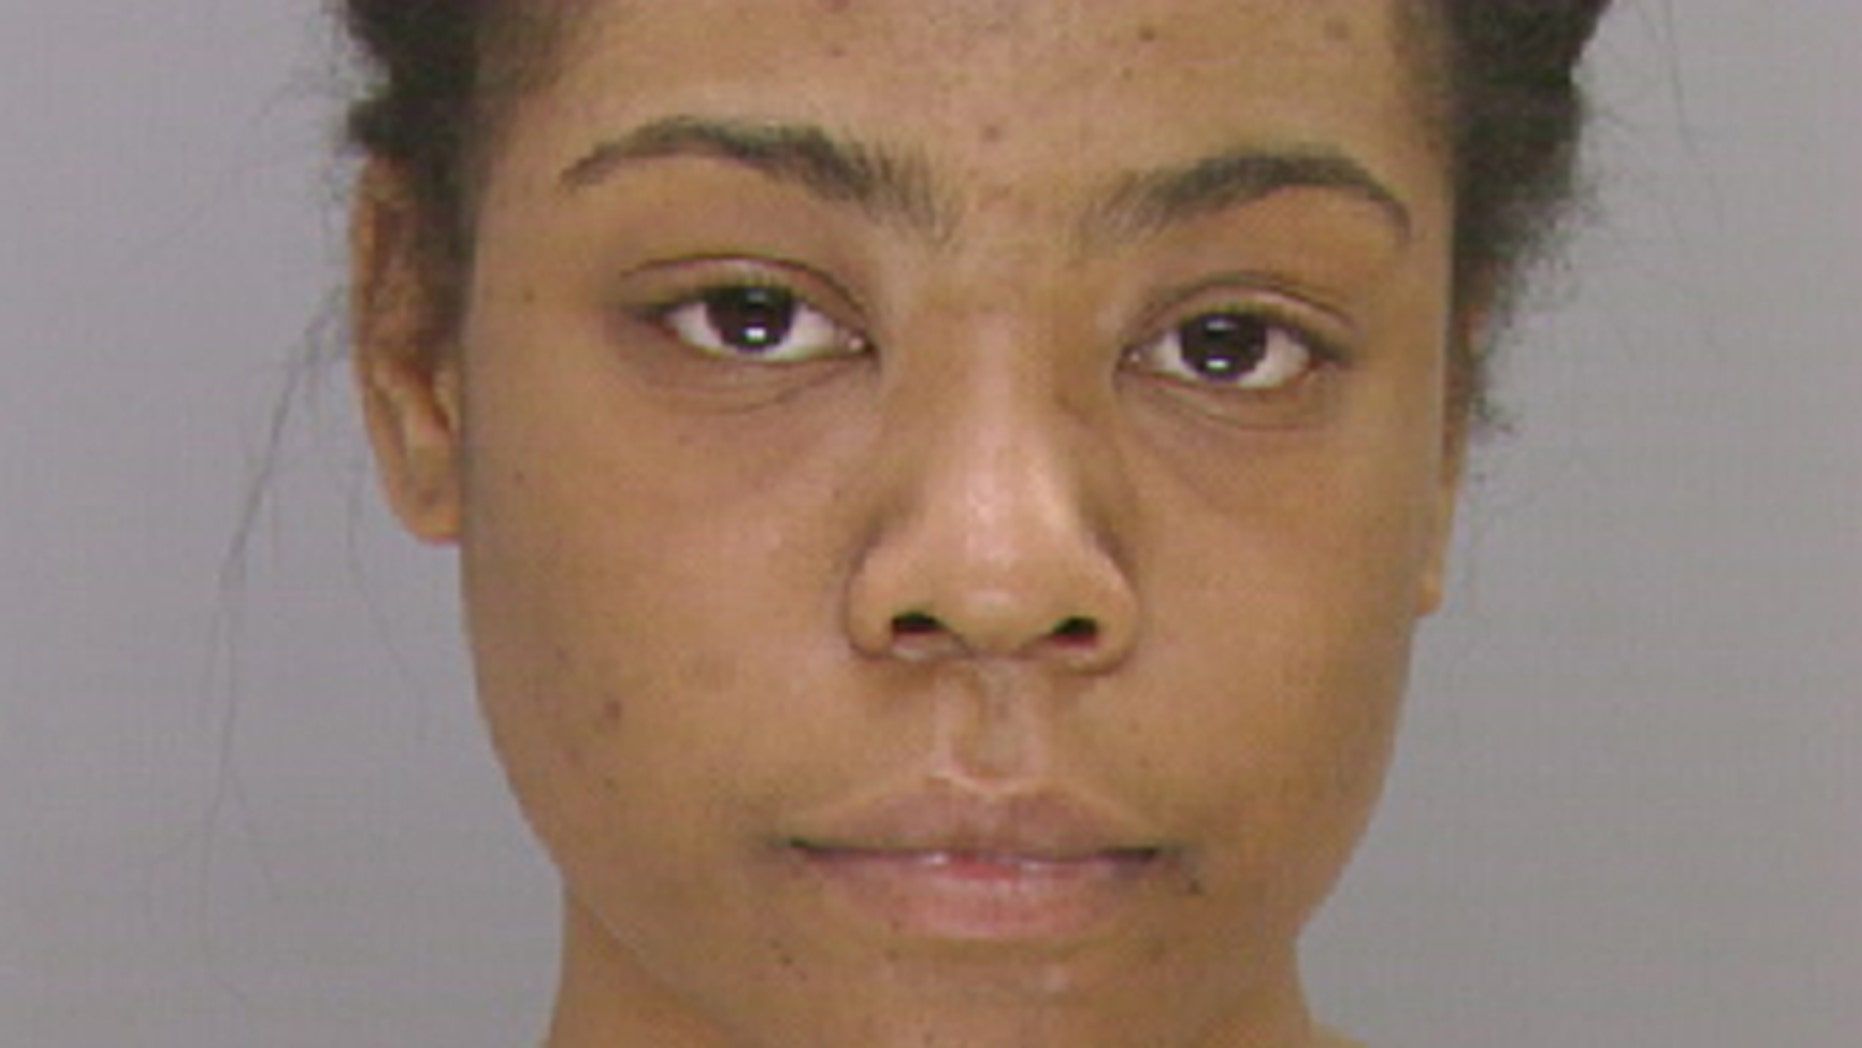 This undated photo provided by the Philadelphia Police Department shows 19-year-old Christina Regusters. Regusters, a day care worker charged with the abduction and rape of a 5-year-old girl who was found barely clothed and shivering in a chilly playground, has been indicted by a grand jury.